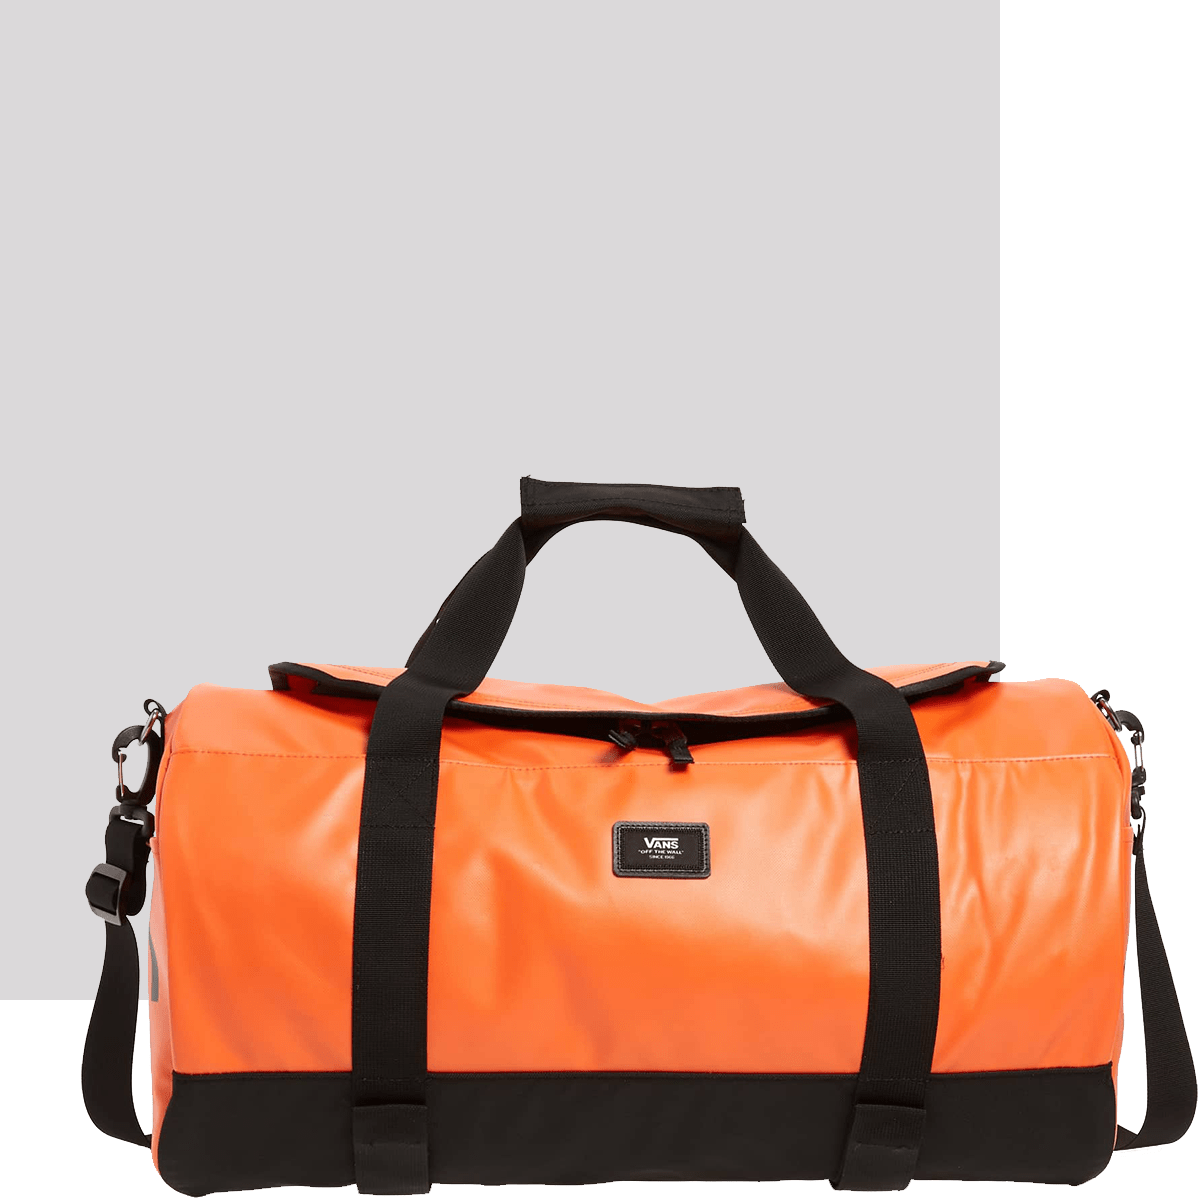 Vans Duffel Bag